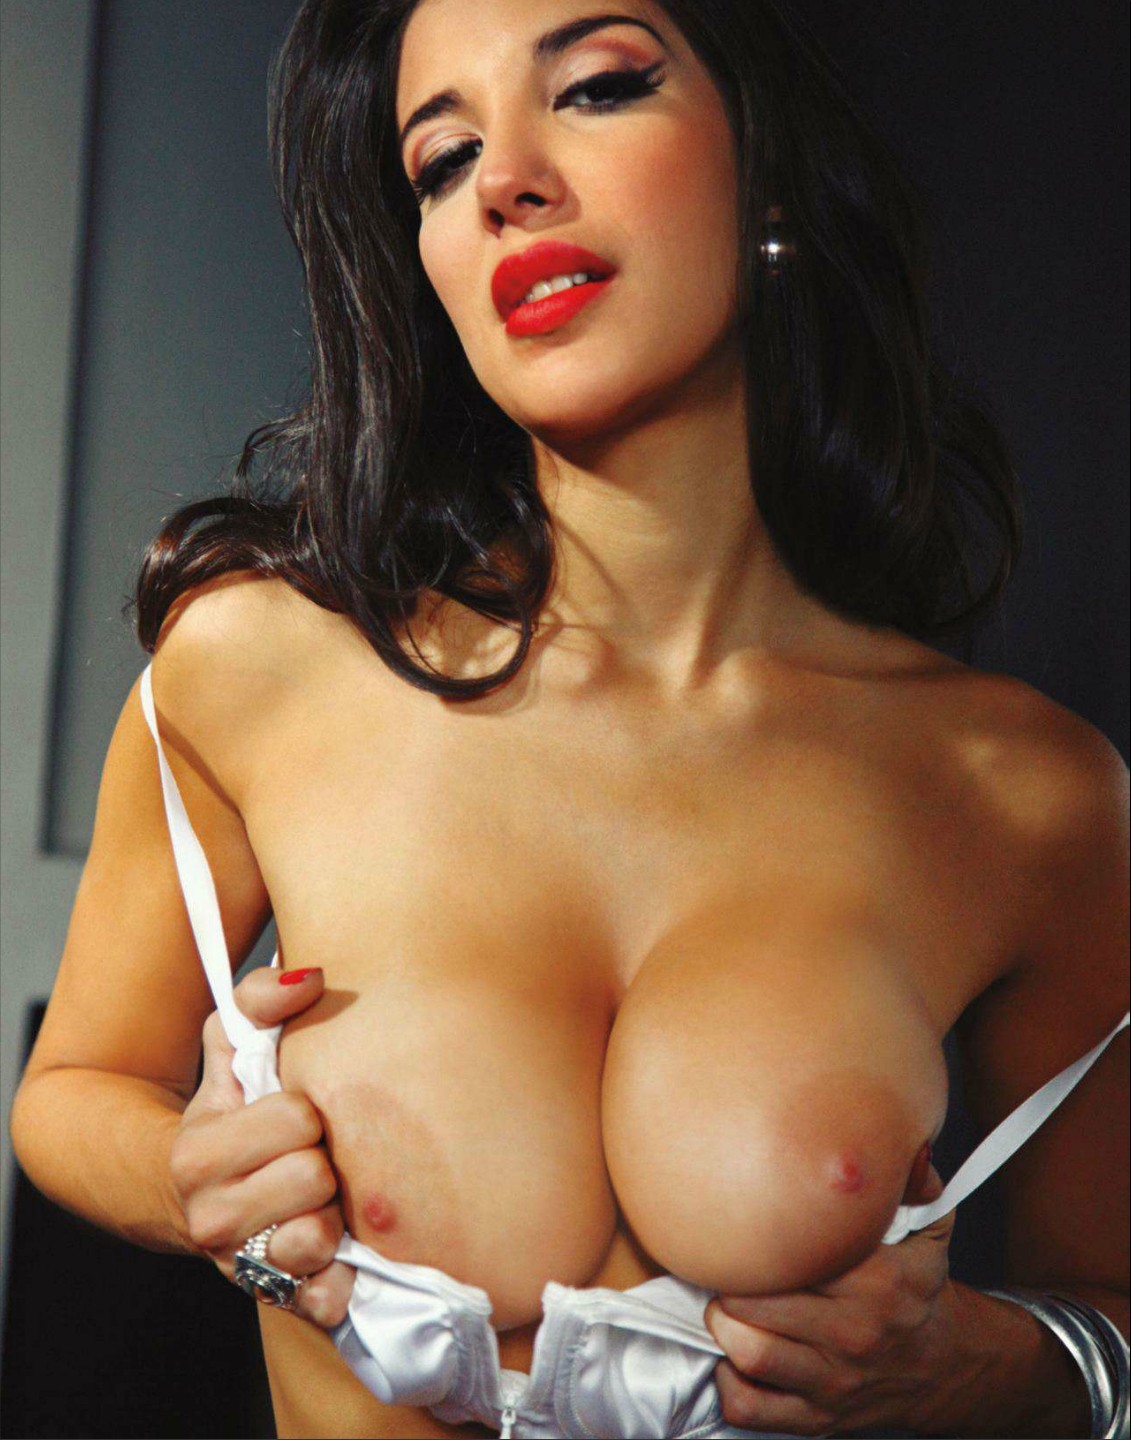 Andrea Rincón Naked andrea rinc�n nude - page 2 pictures, naked, oops, topless